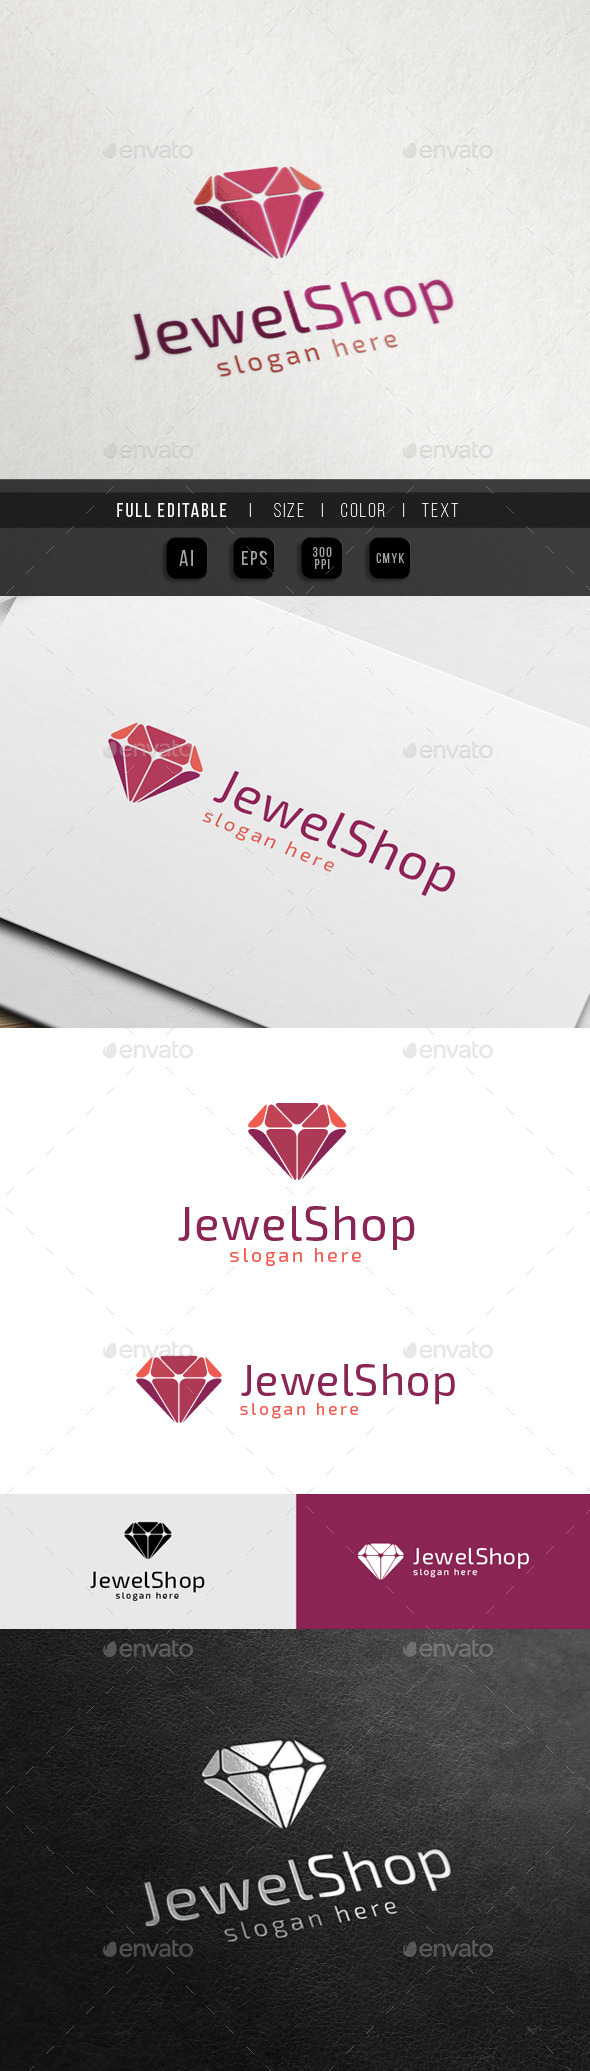 GraphicRiver Jewelry Shop Diamond Art 10547553